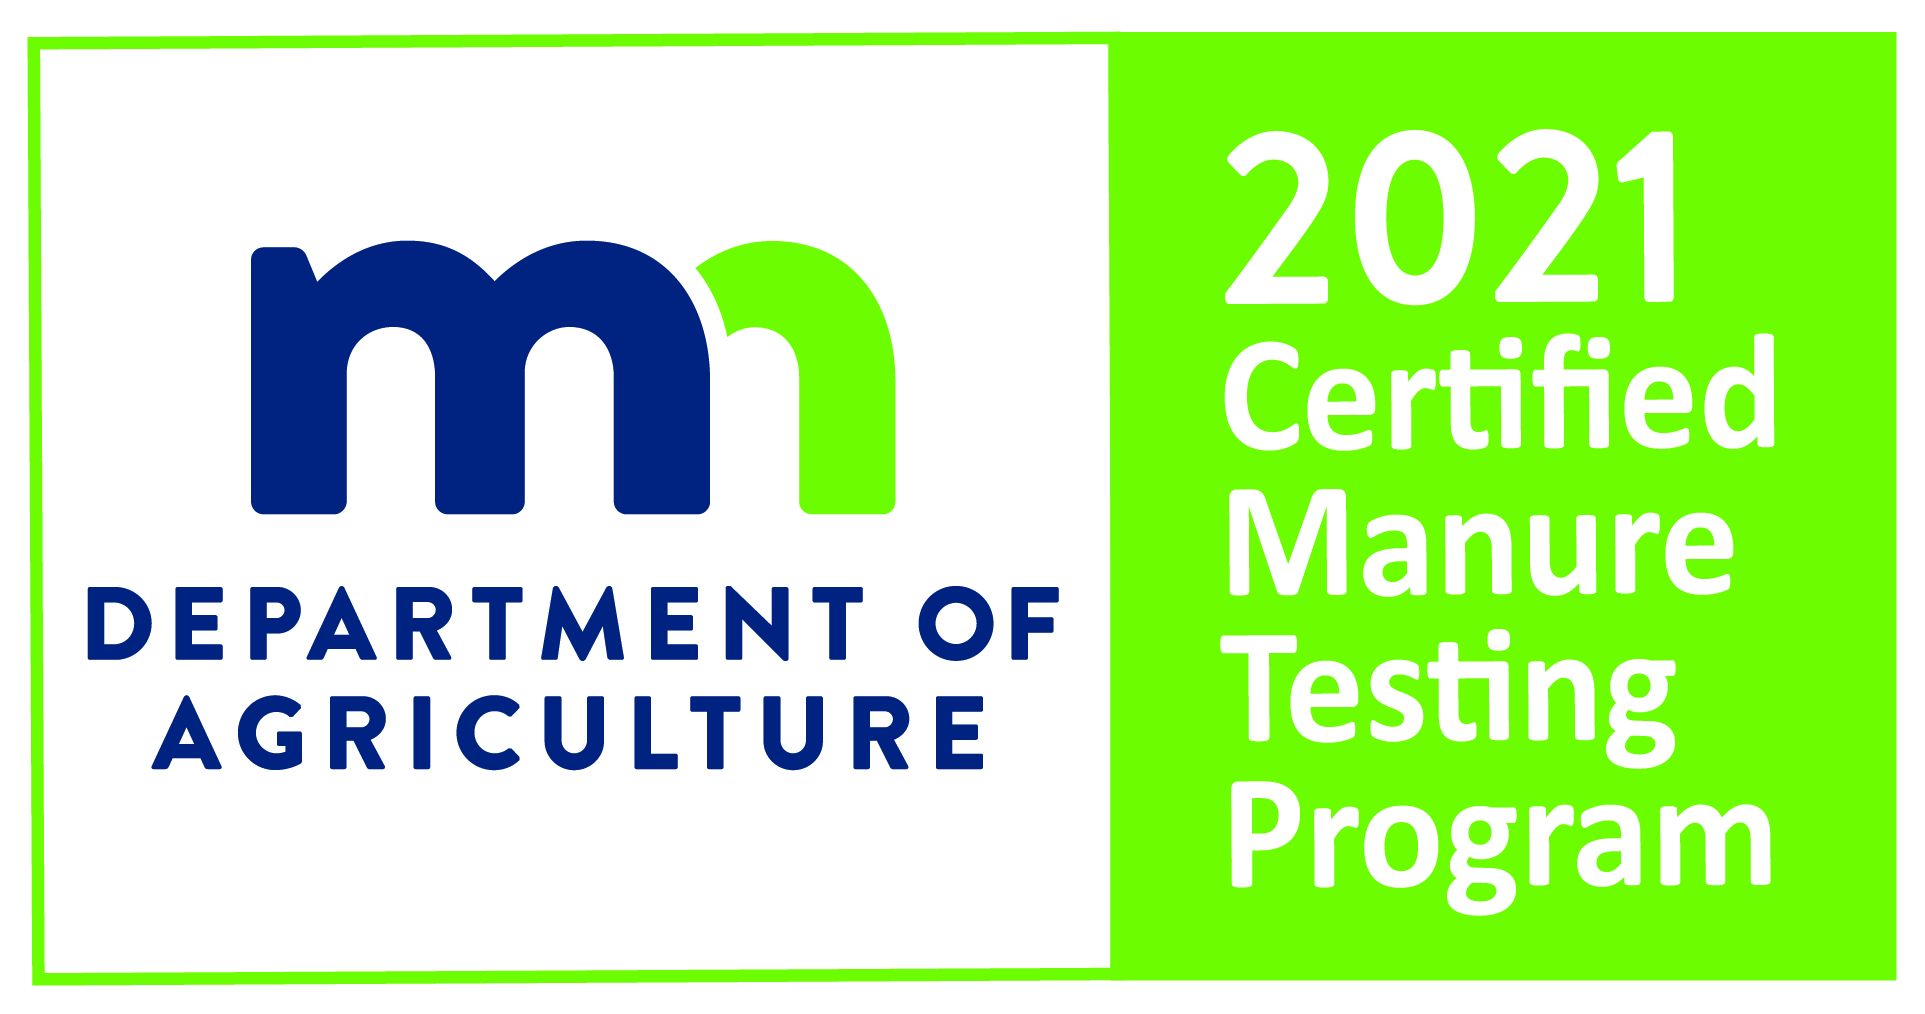 Minnesota Department of Agriculture 2021          Certified Manure Testing Program.